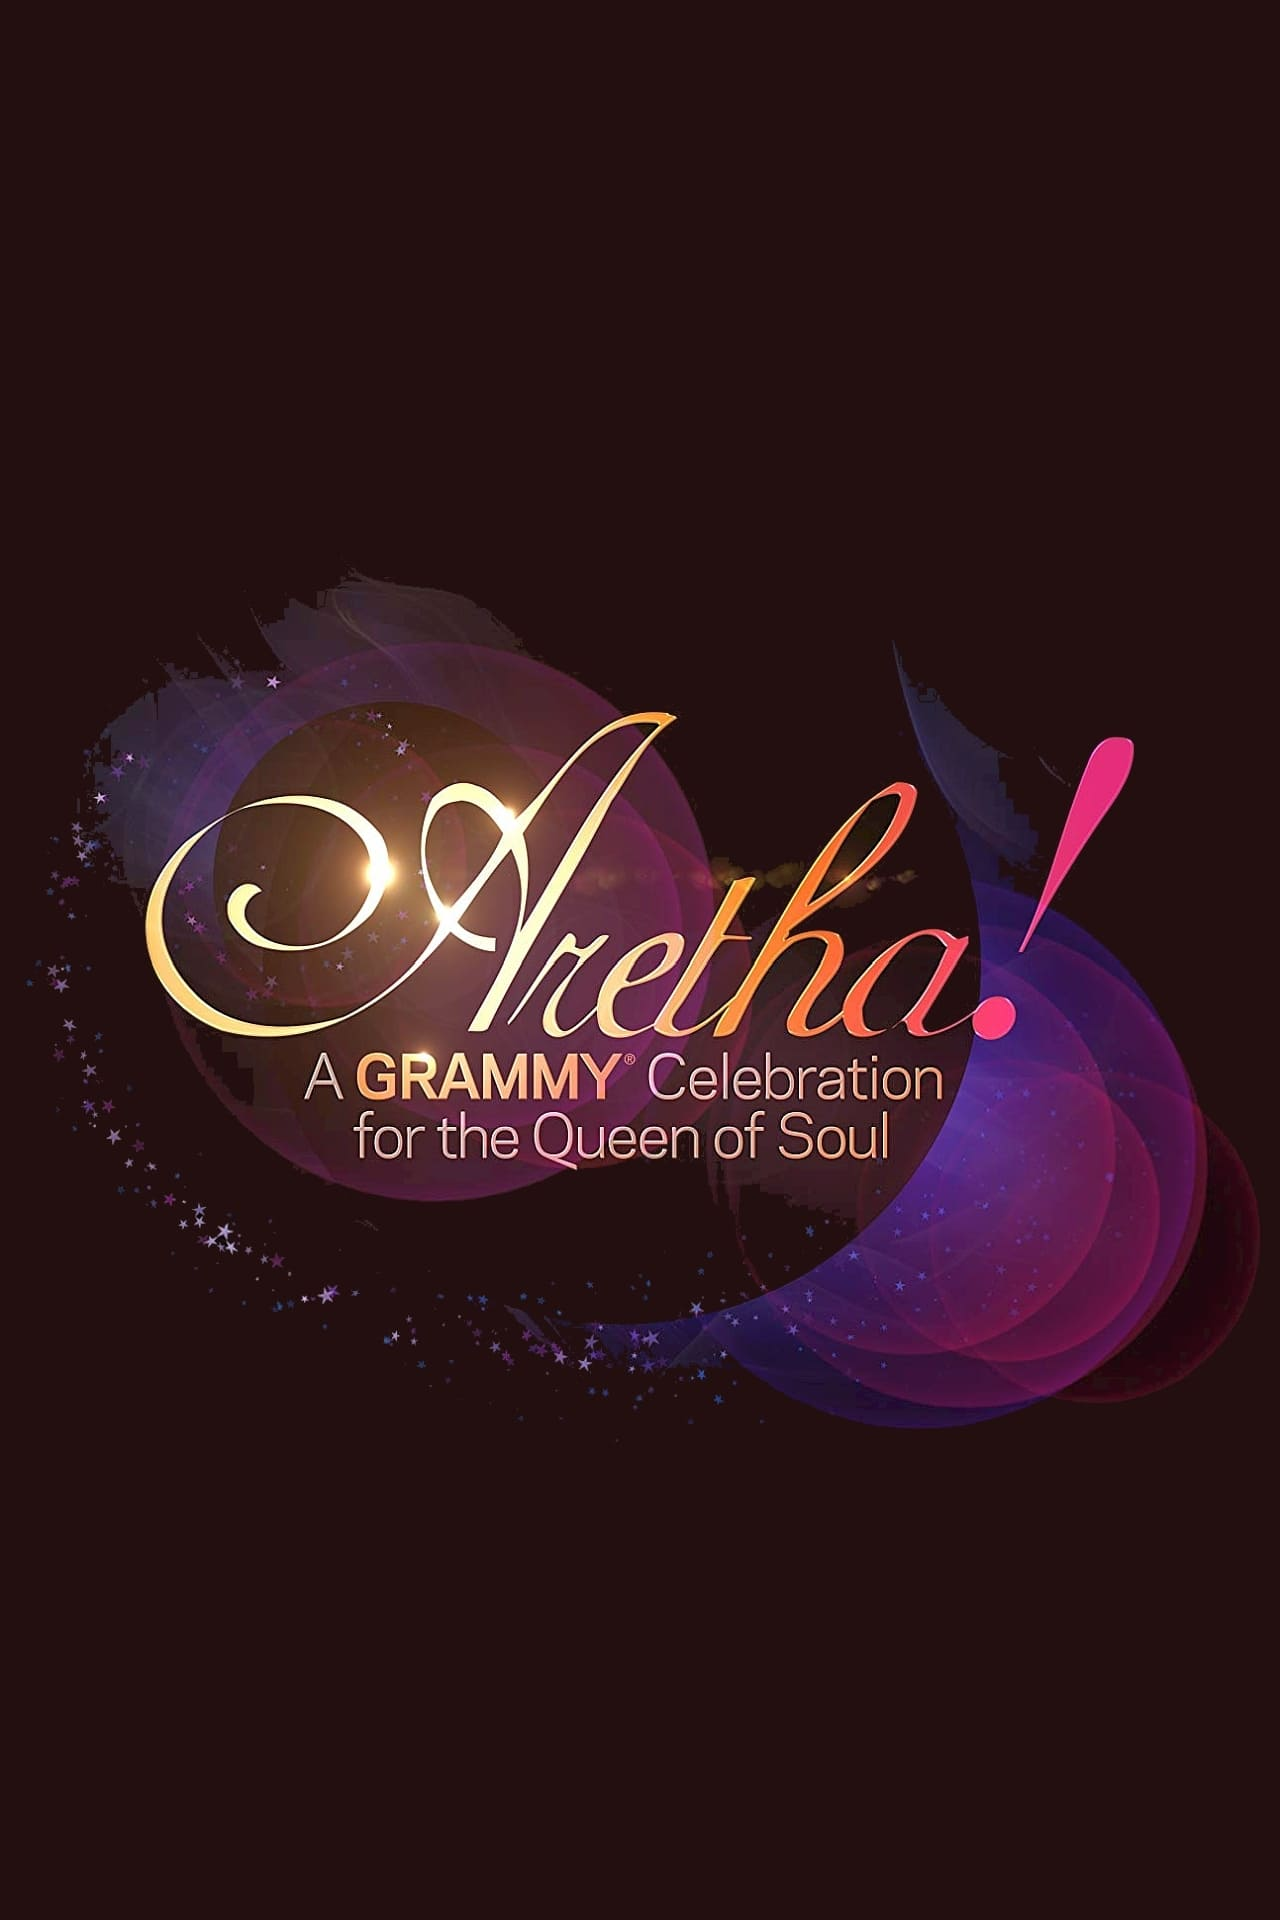 Aretha! A Grammy Celebration for the Queen of Soul (2019)